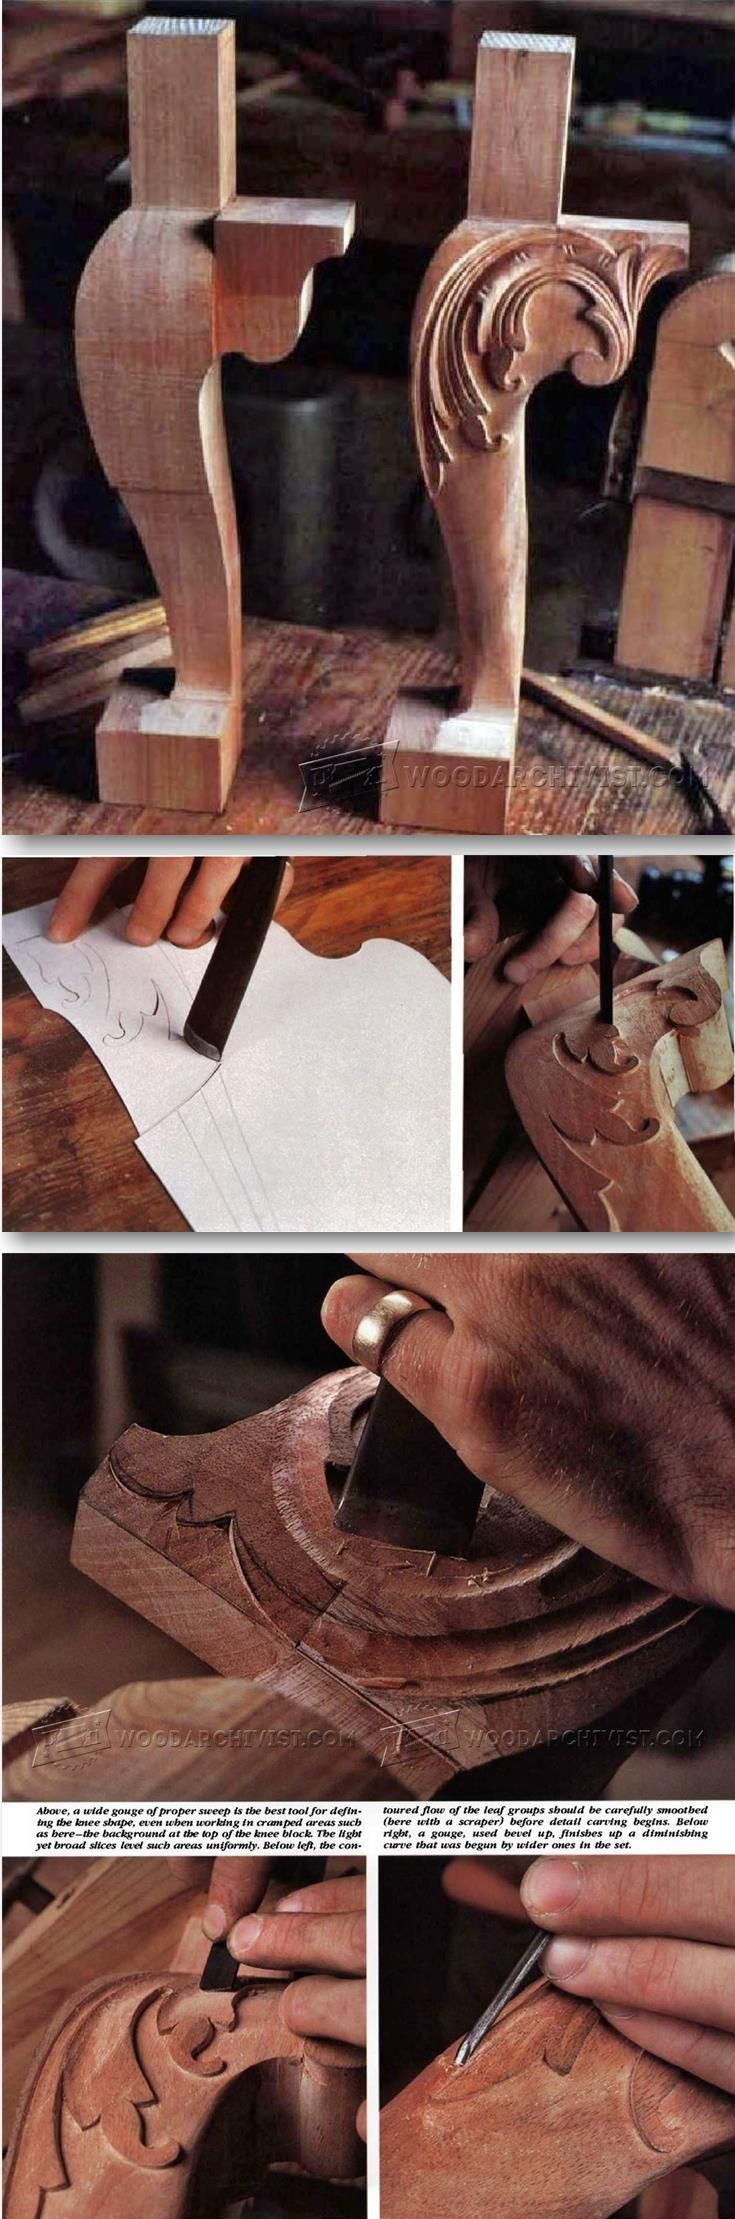 best tre arbeider images on pinterest woodworking carpentry